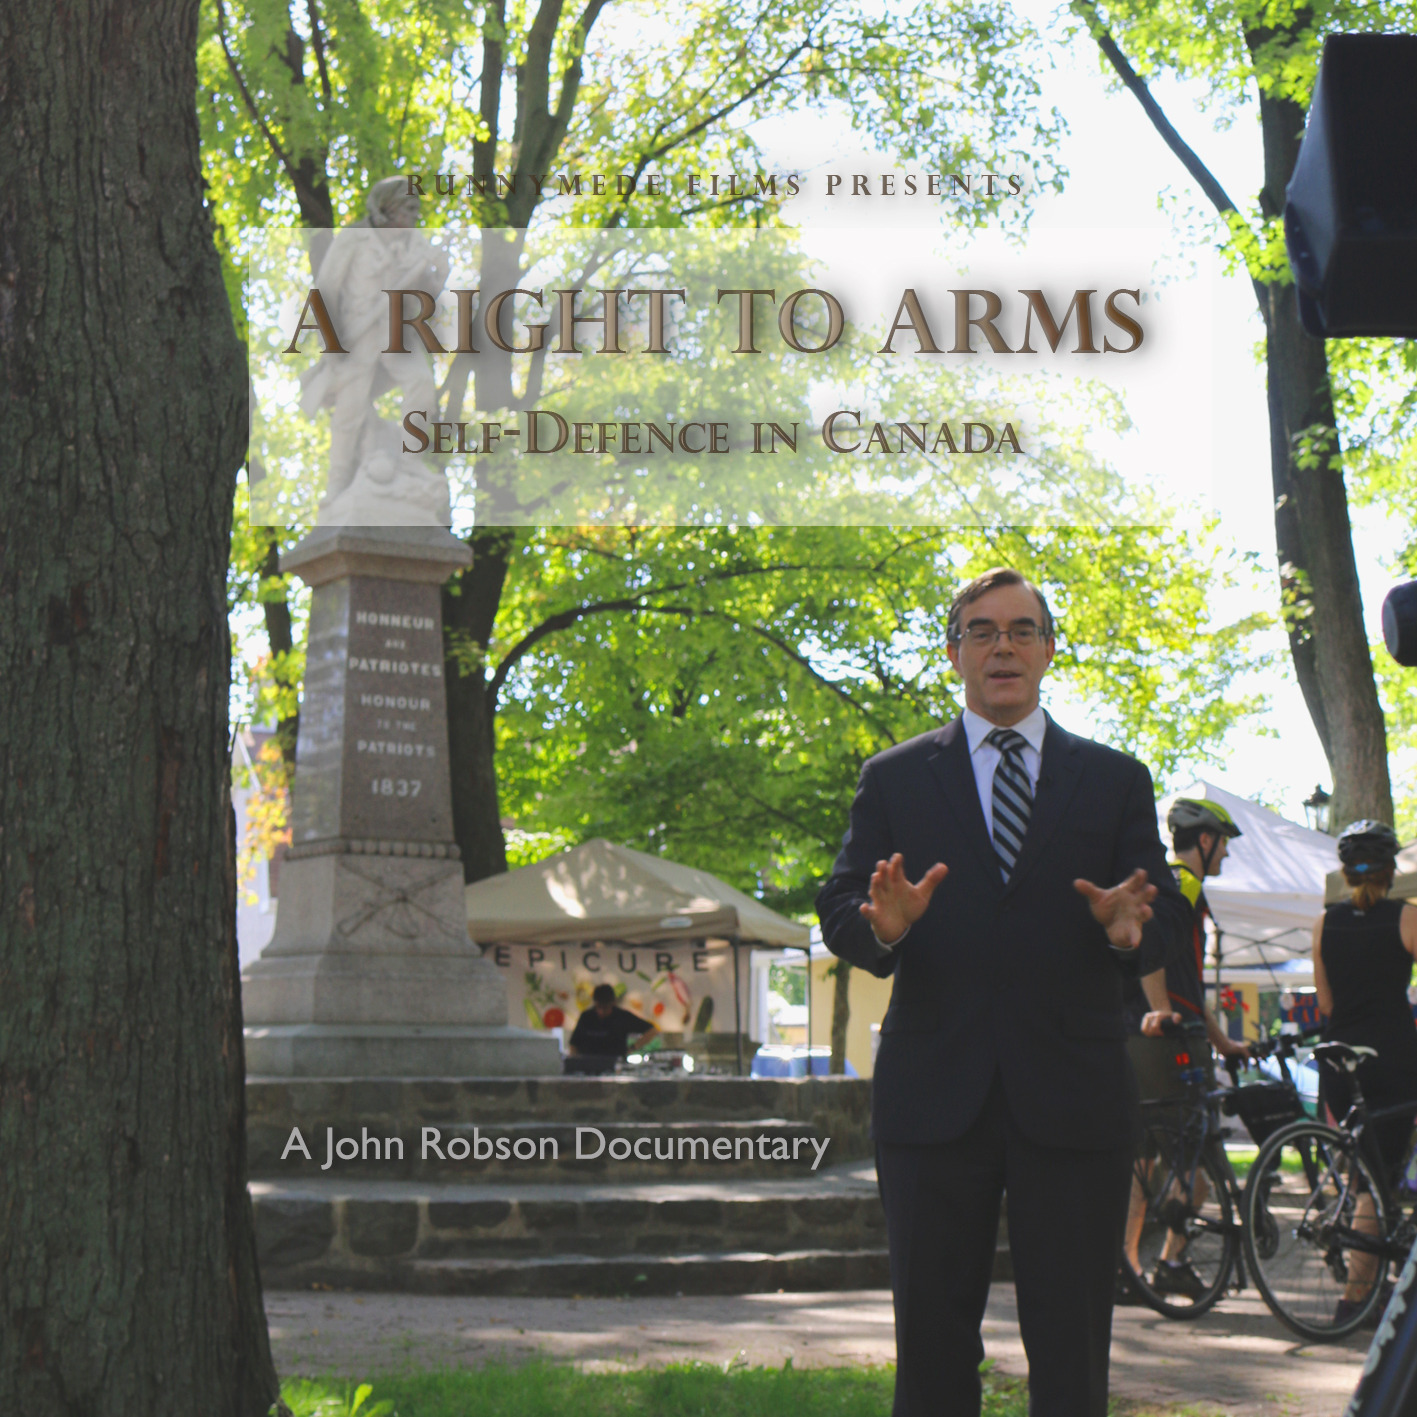 A Right to Arms: A John Robson documentary